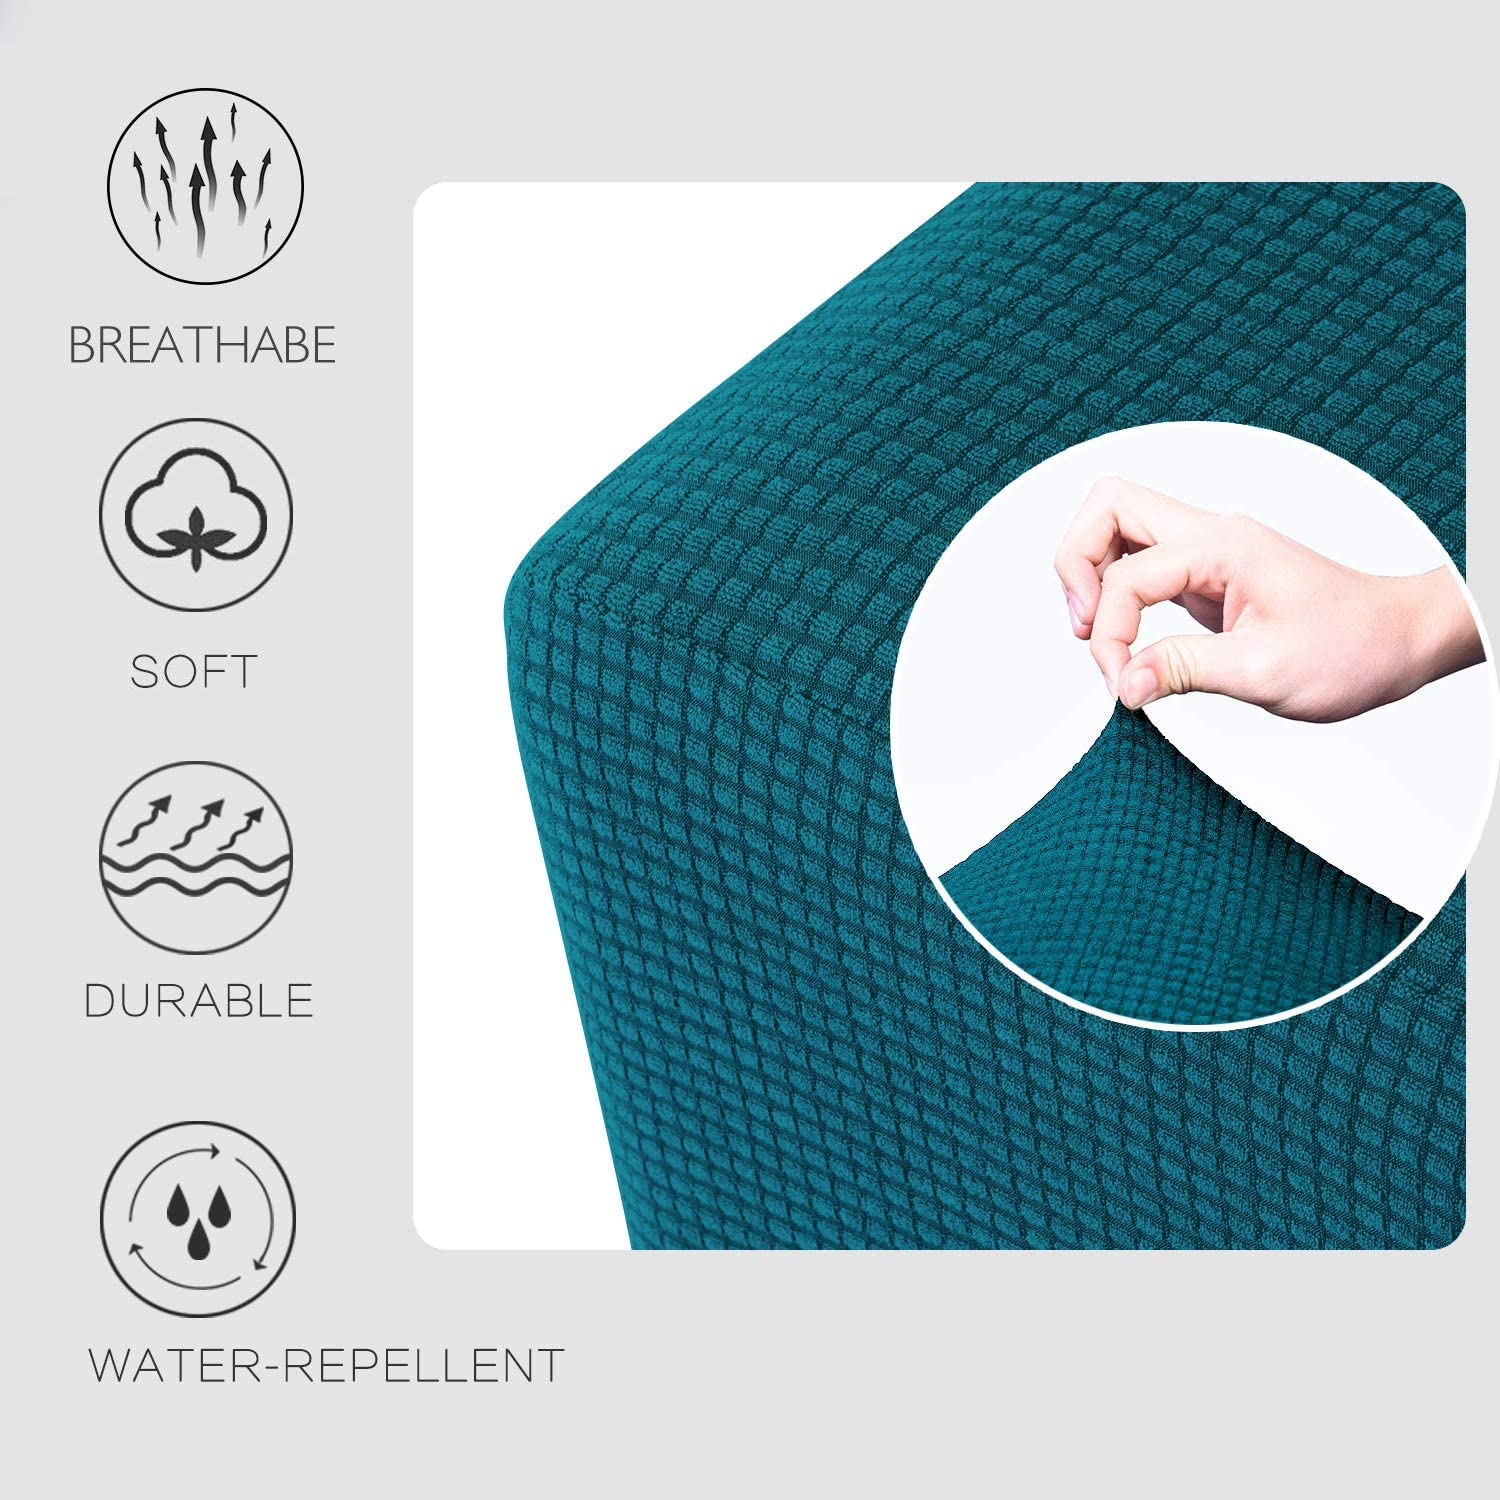 Granbest Premium Water Repellent Ottoman Cover High Stretch Rectangle Folding Storage Stool Ottoman Slipcovers Ottoman Oversized, Blackish Green